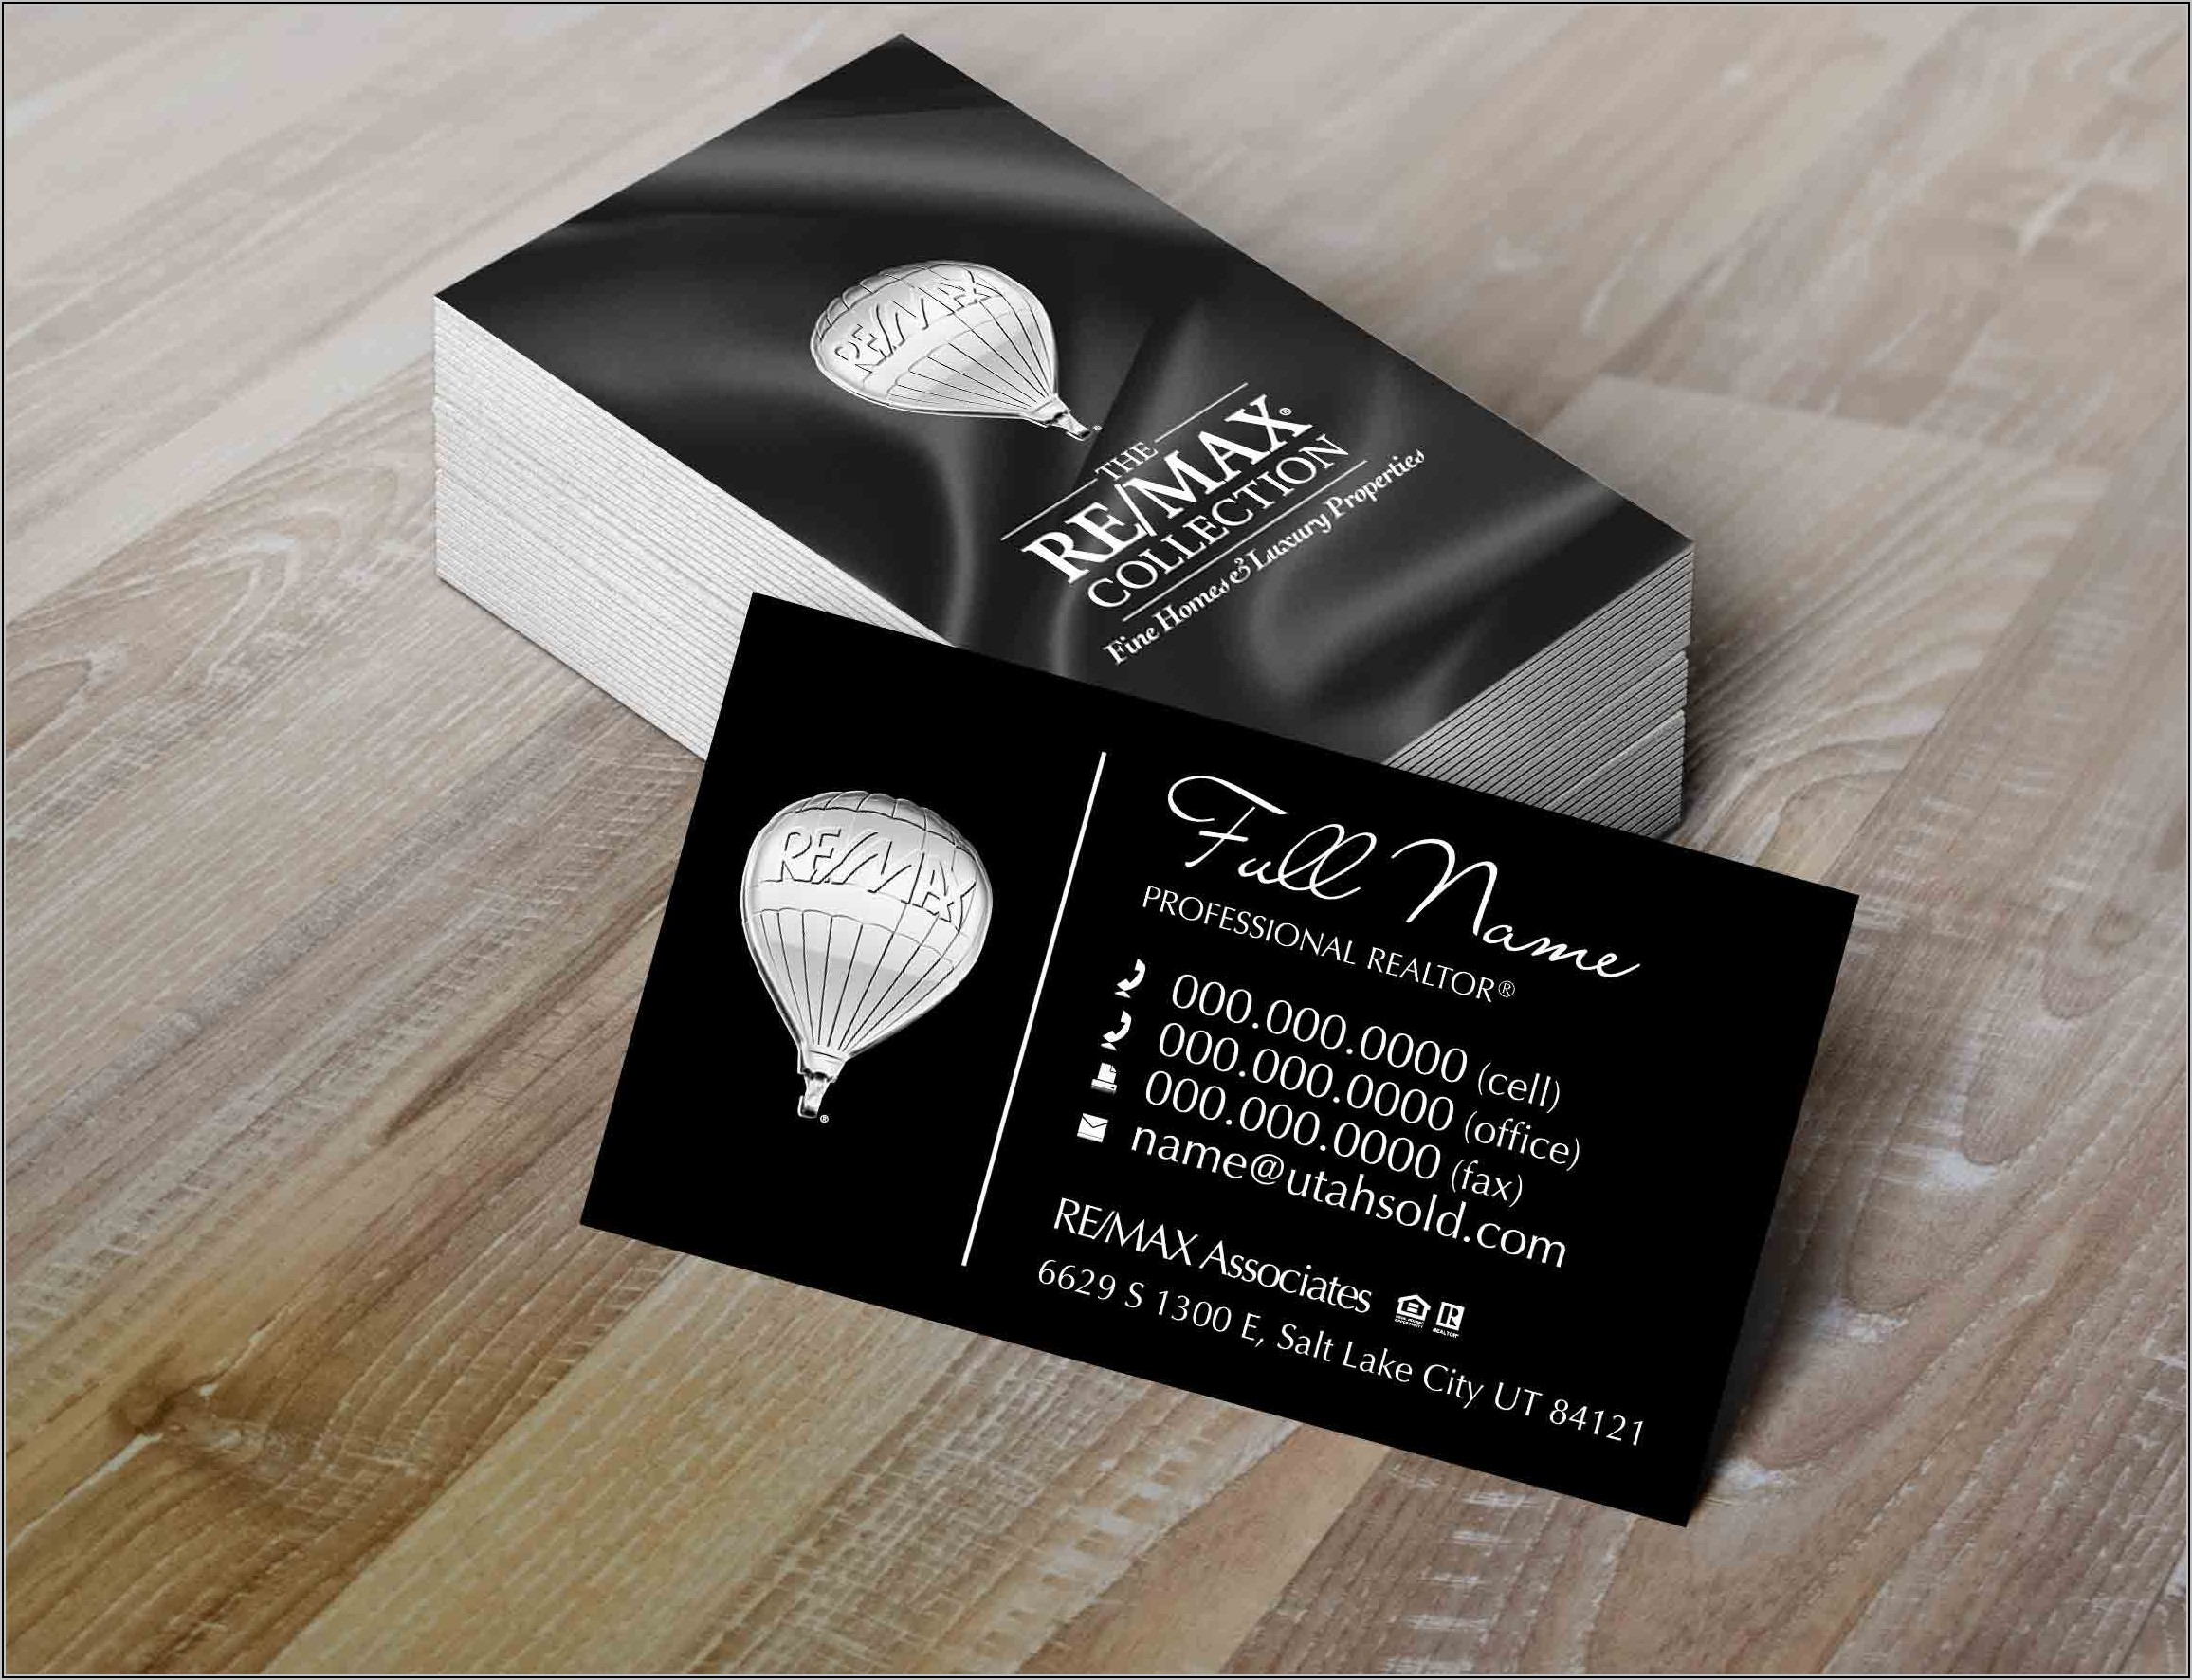 Remax Business Cards Canada